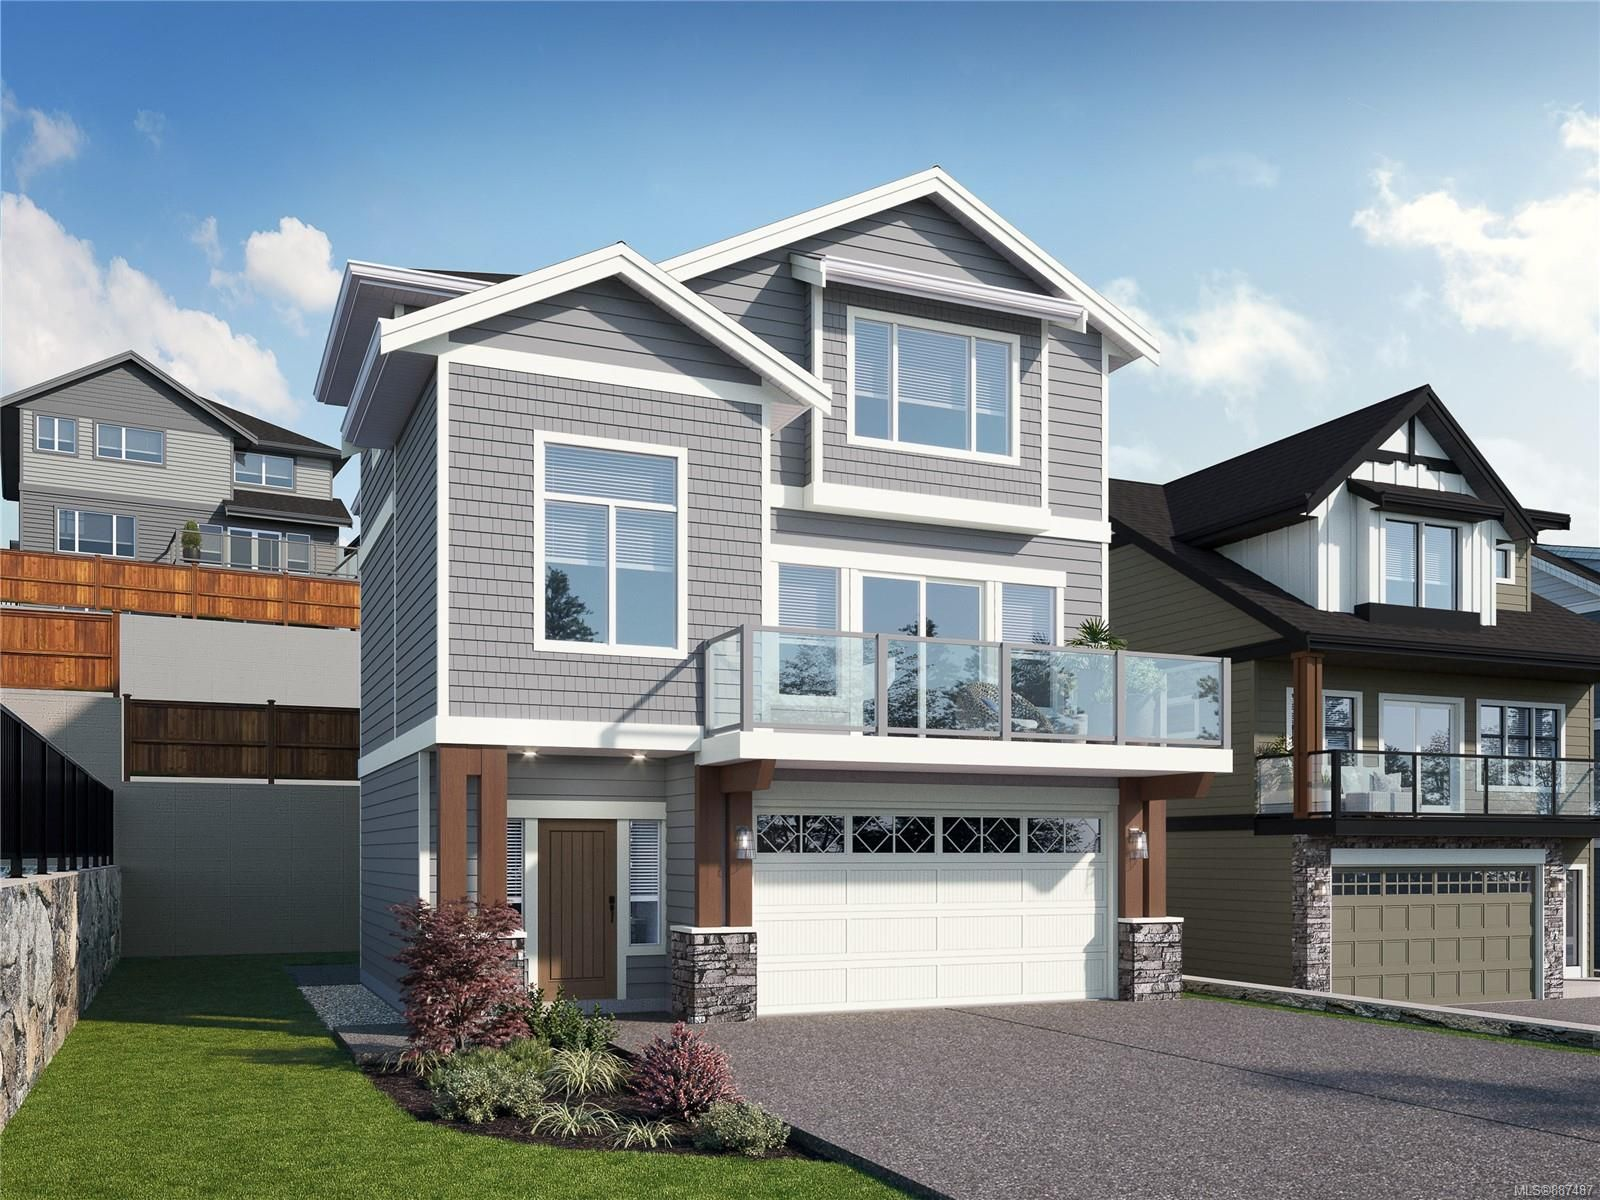 Artist's rendering from provided specs, actual construction may vary